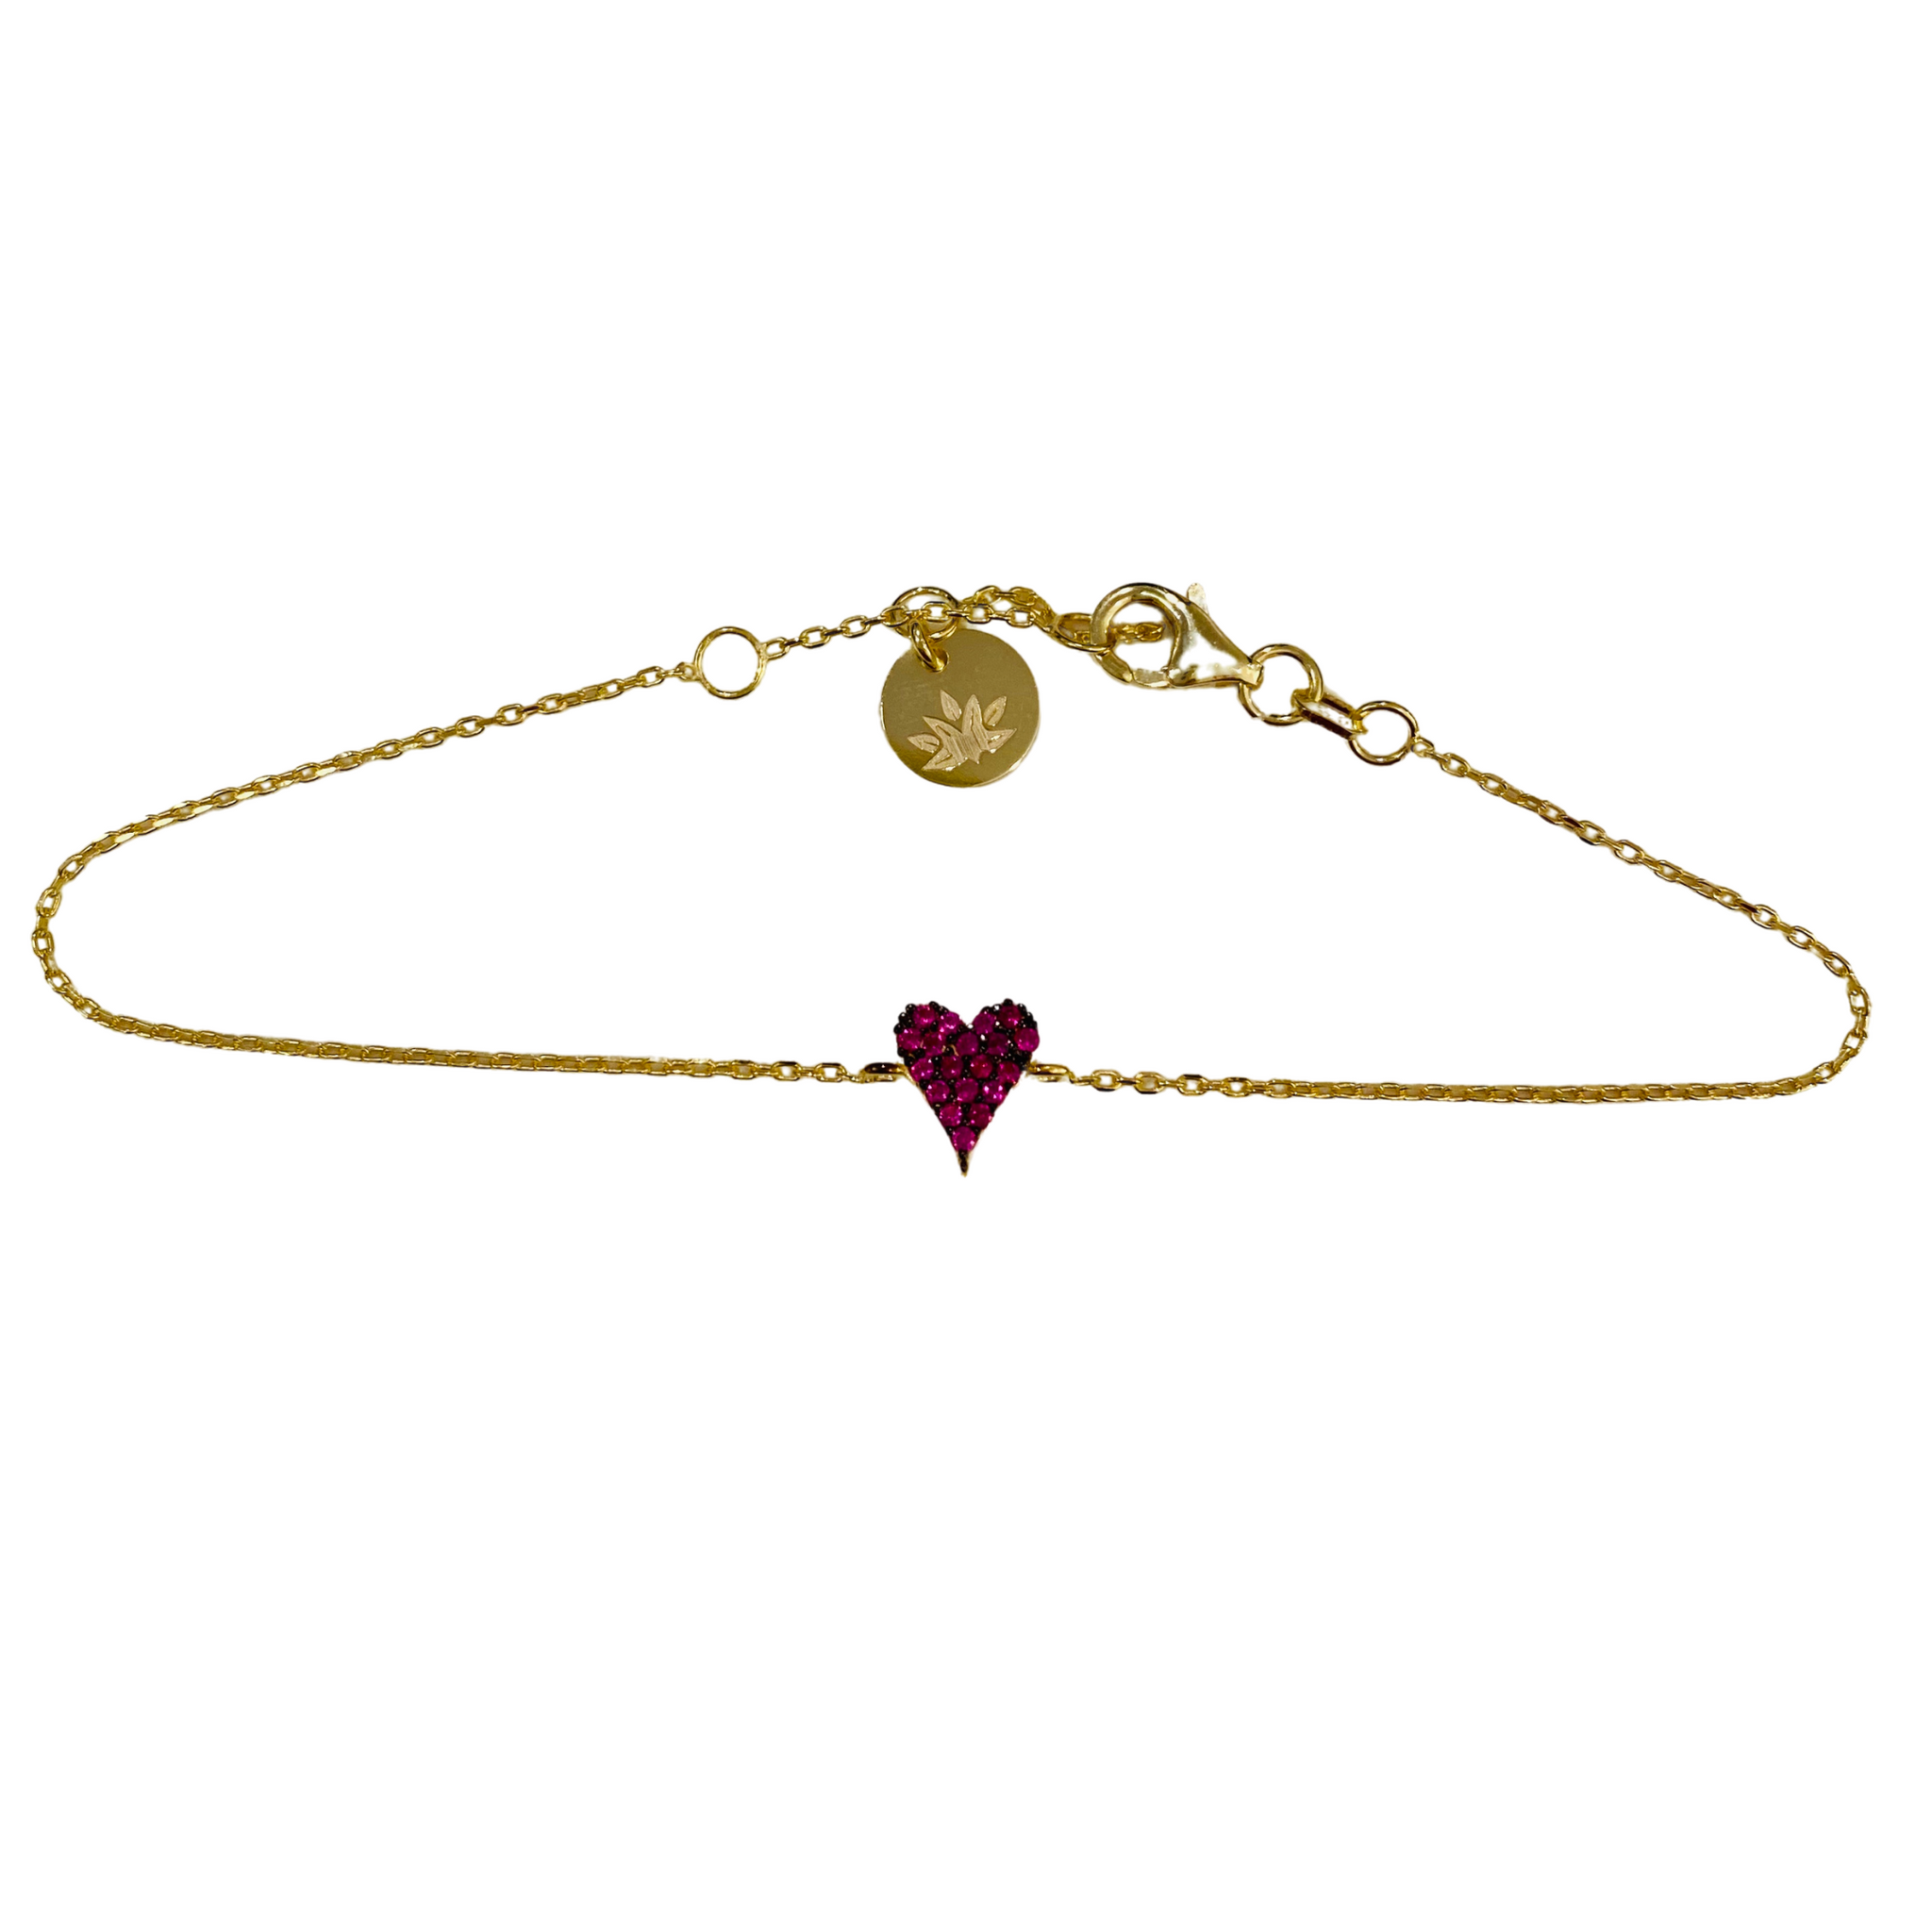 BROOKLYN HEART BRACELET